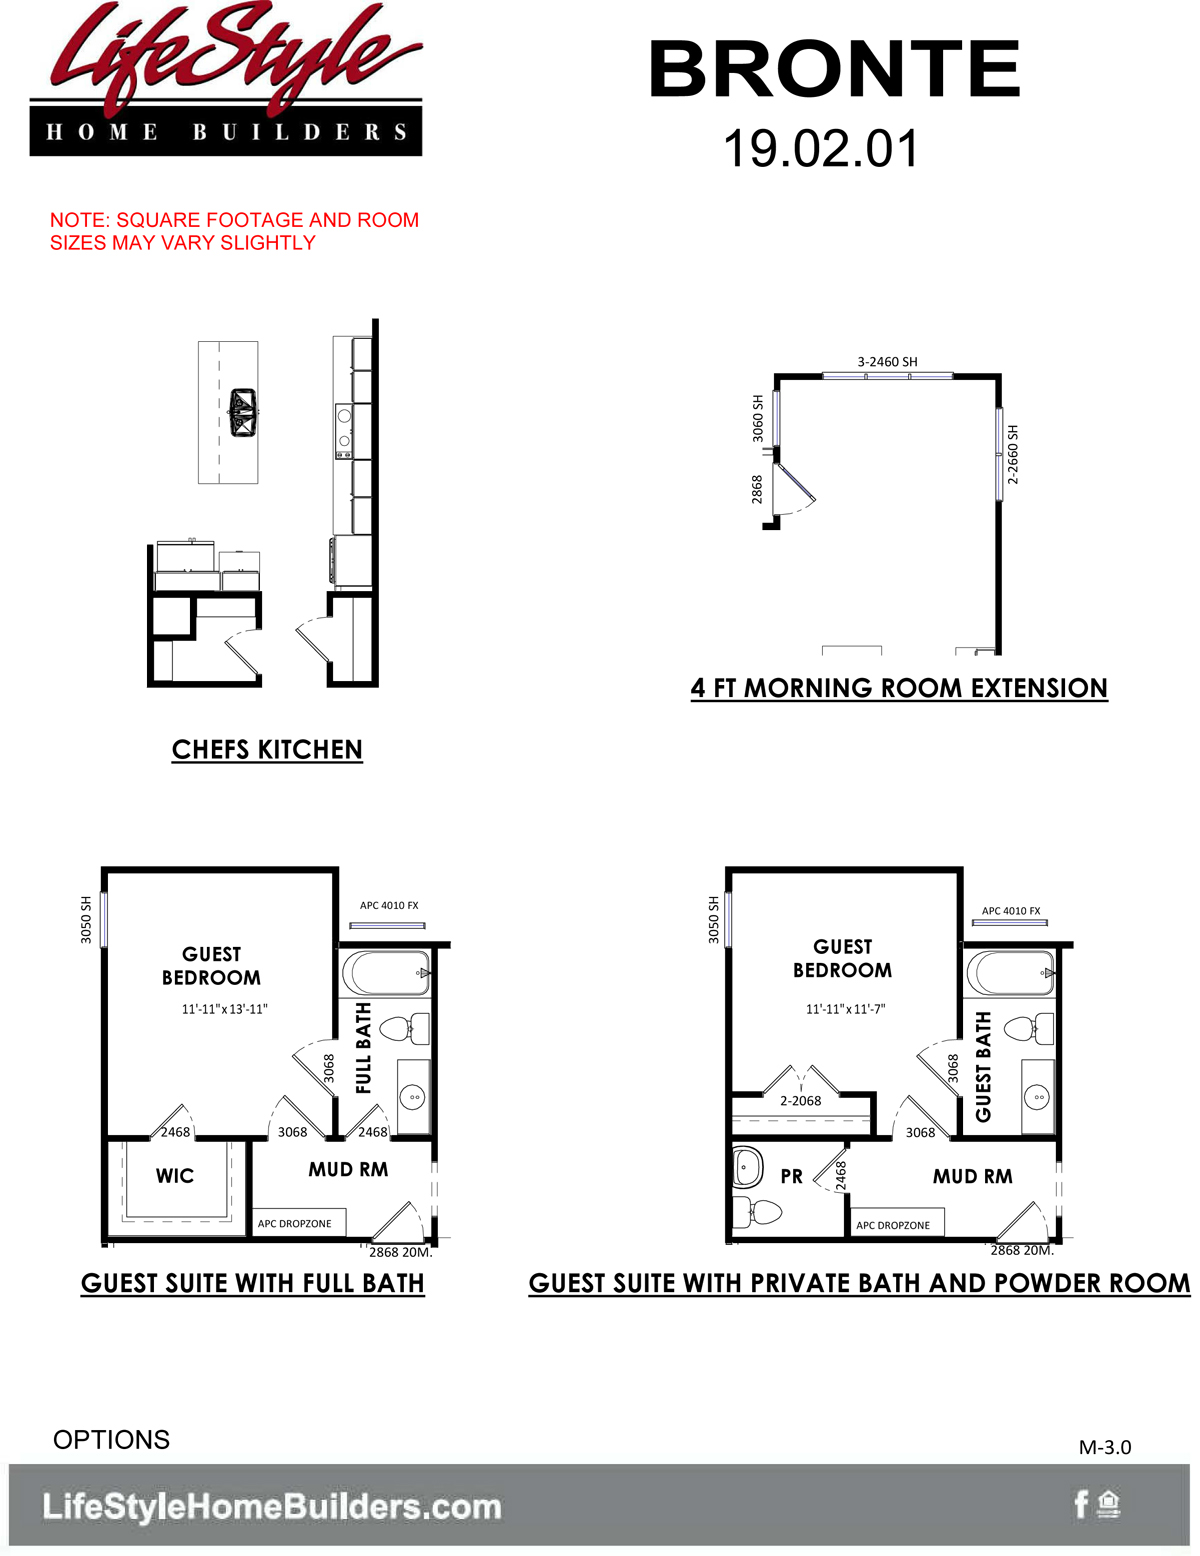 Bronte Floor Plan Lifestyle Home Builders